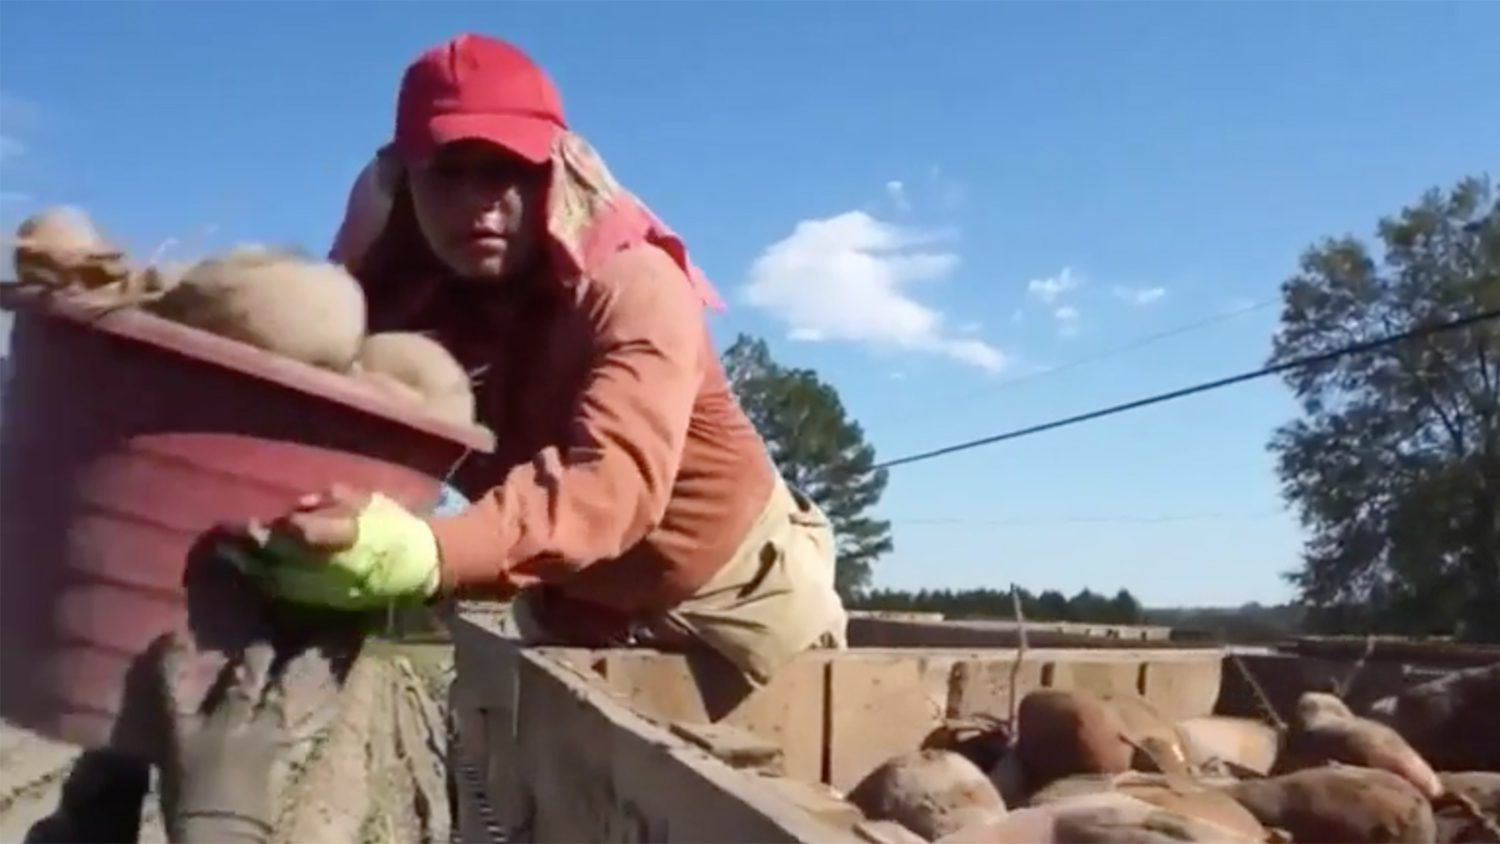 Man harvesting sweet potatoes from a farm field into a truck